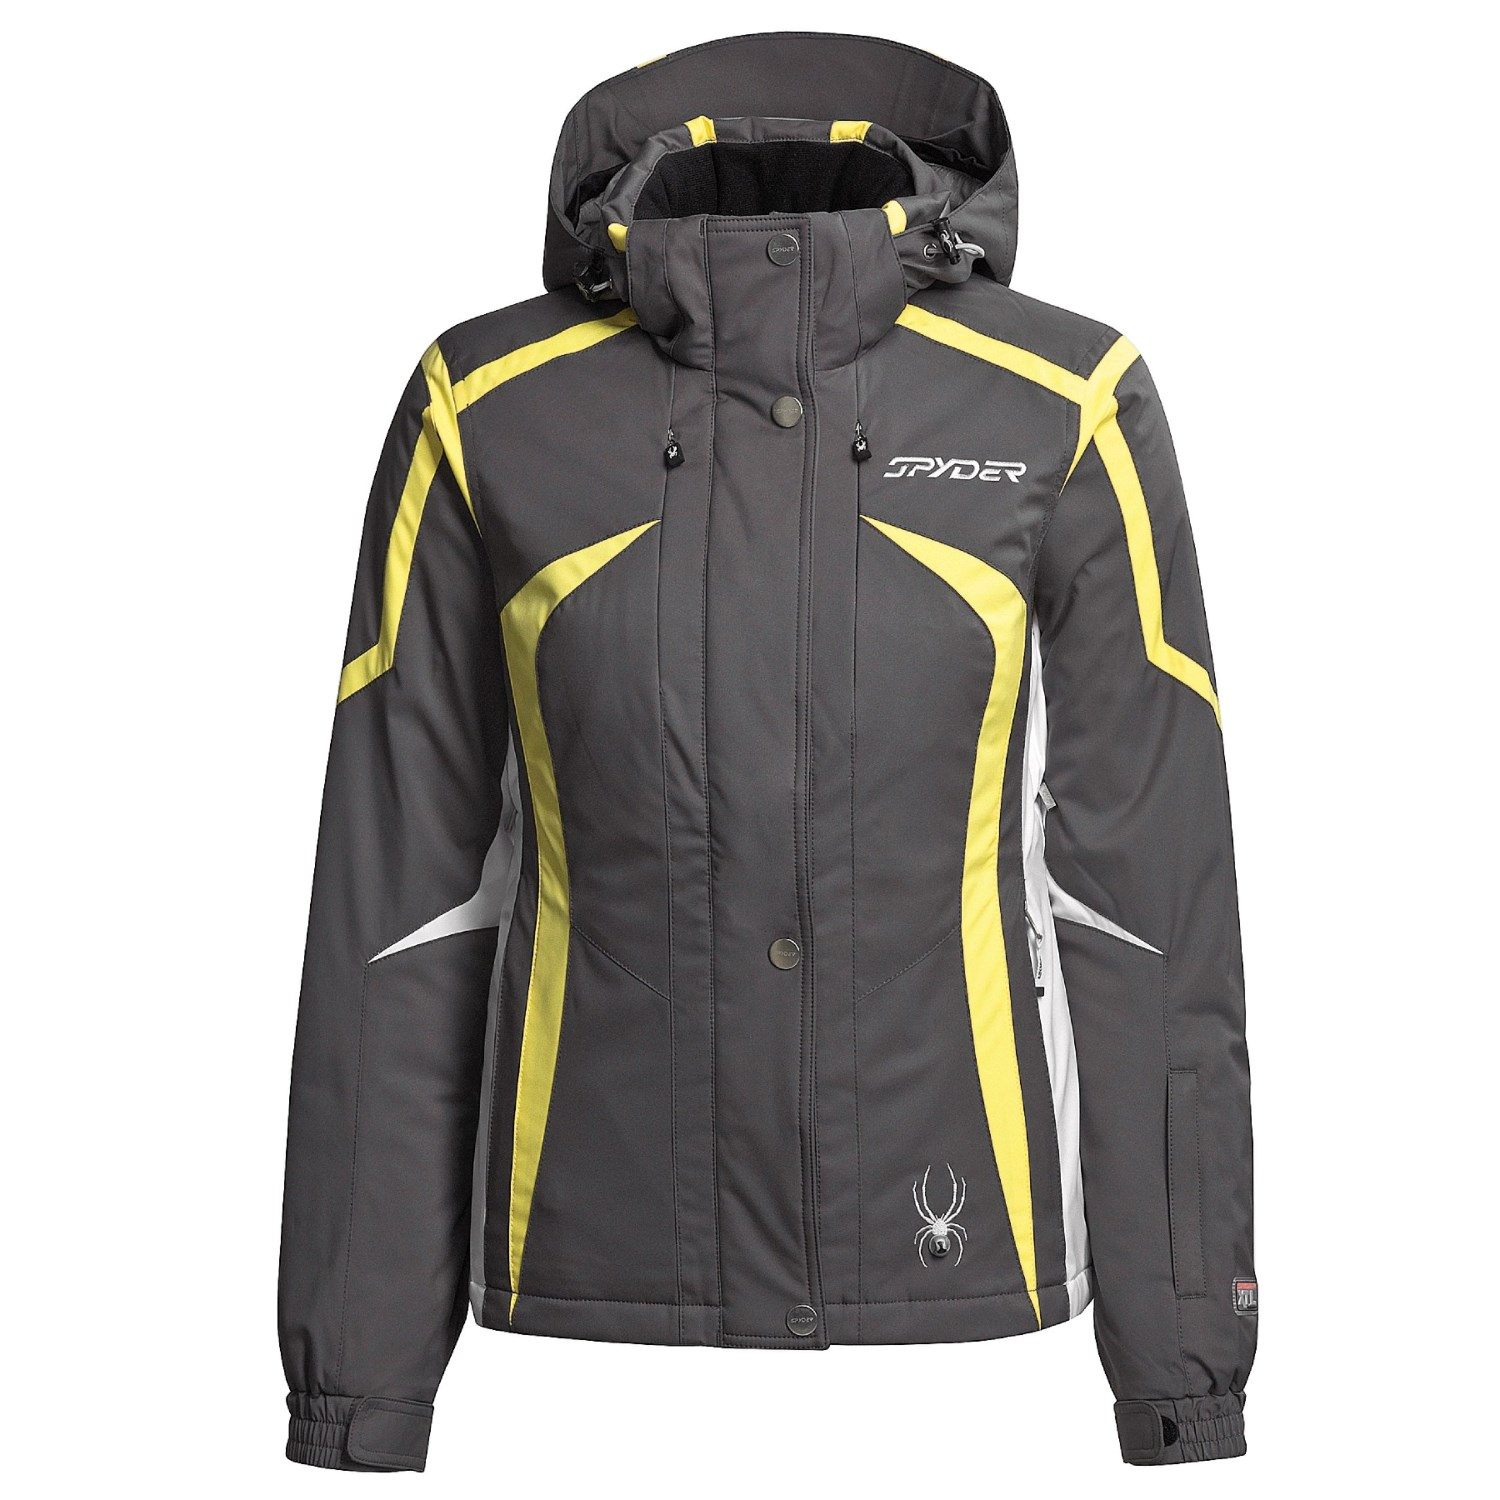 Low Cost Womens Spyder Charge Snow Jacket - Spyder Charge Jacket Waterproof Insulated For Women~p~48729